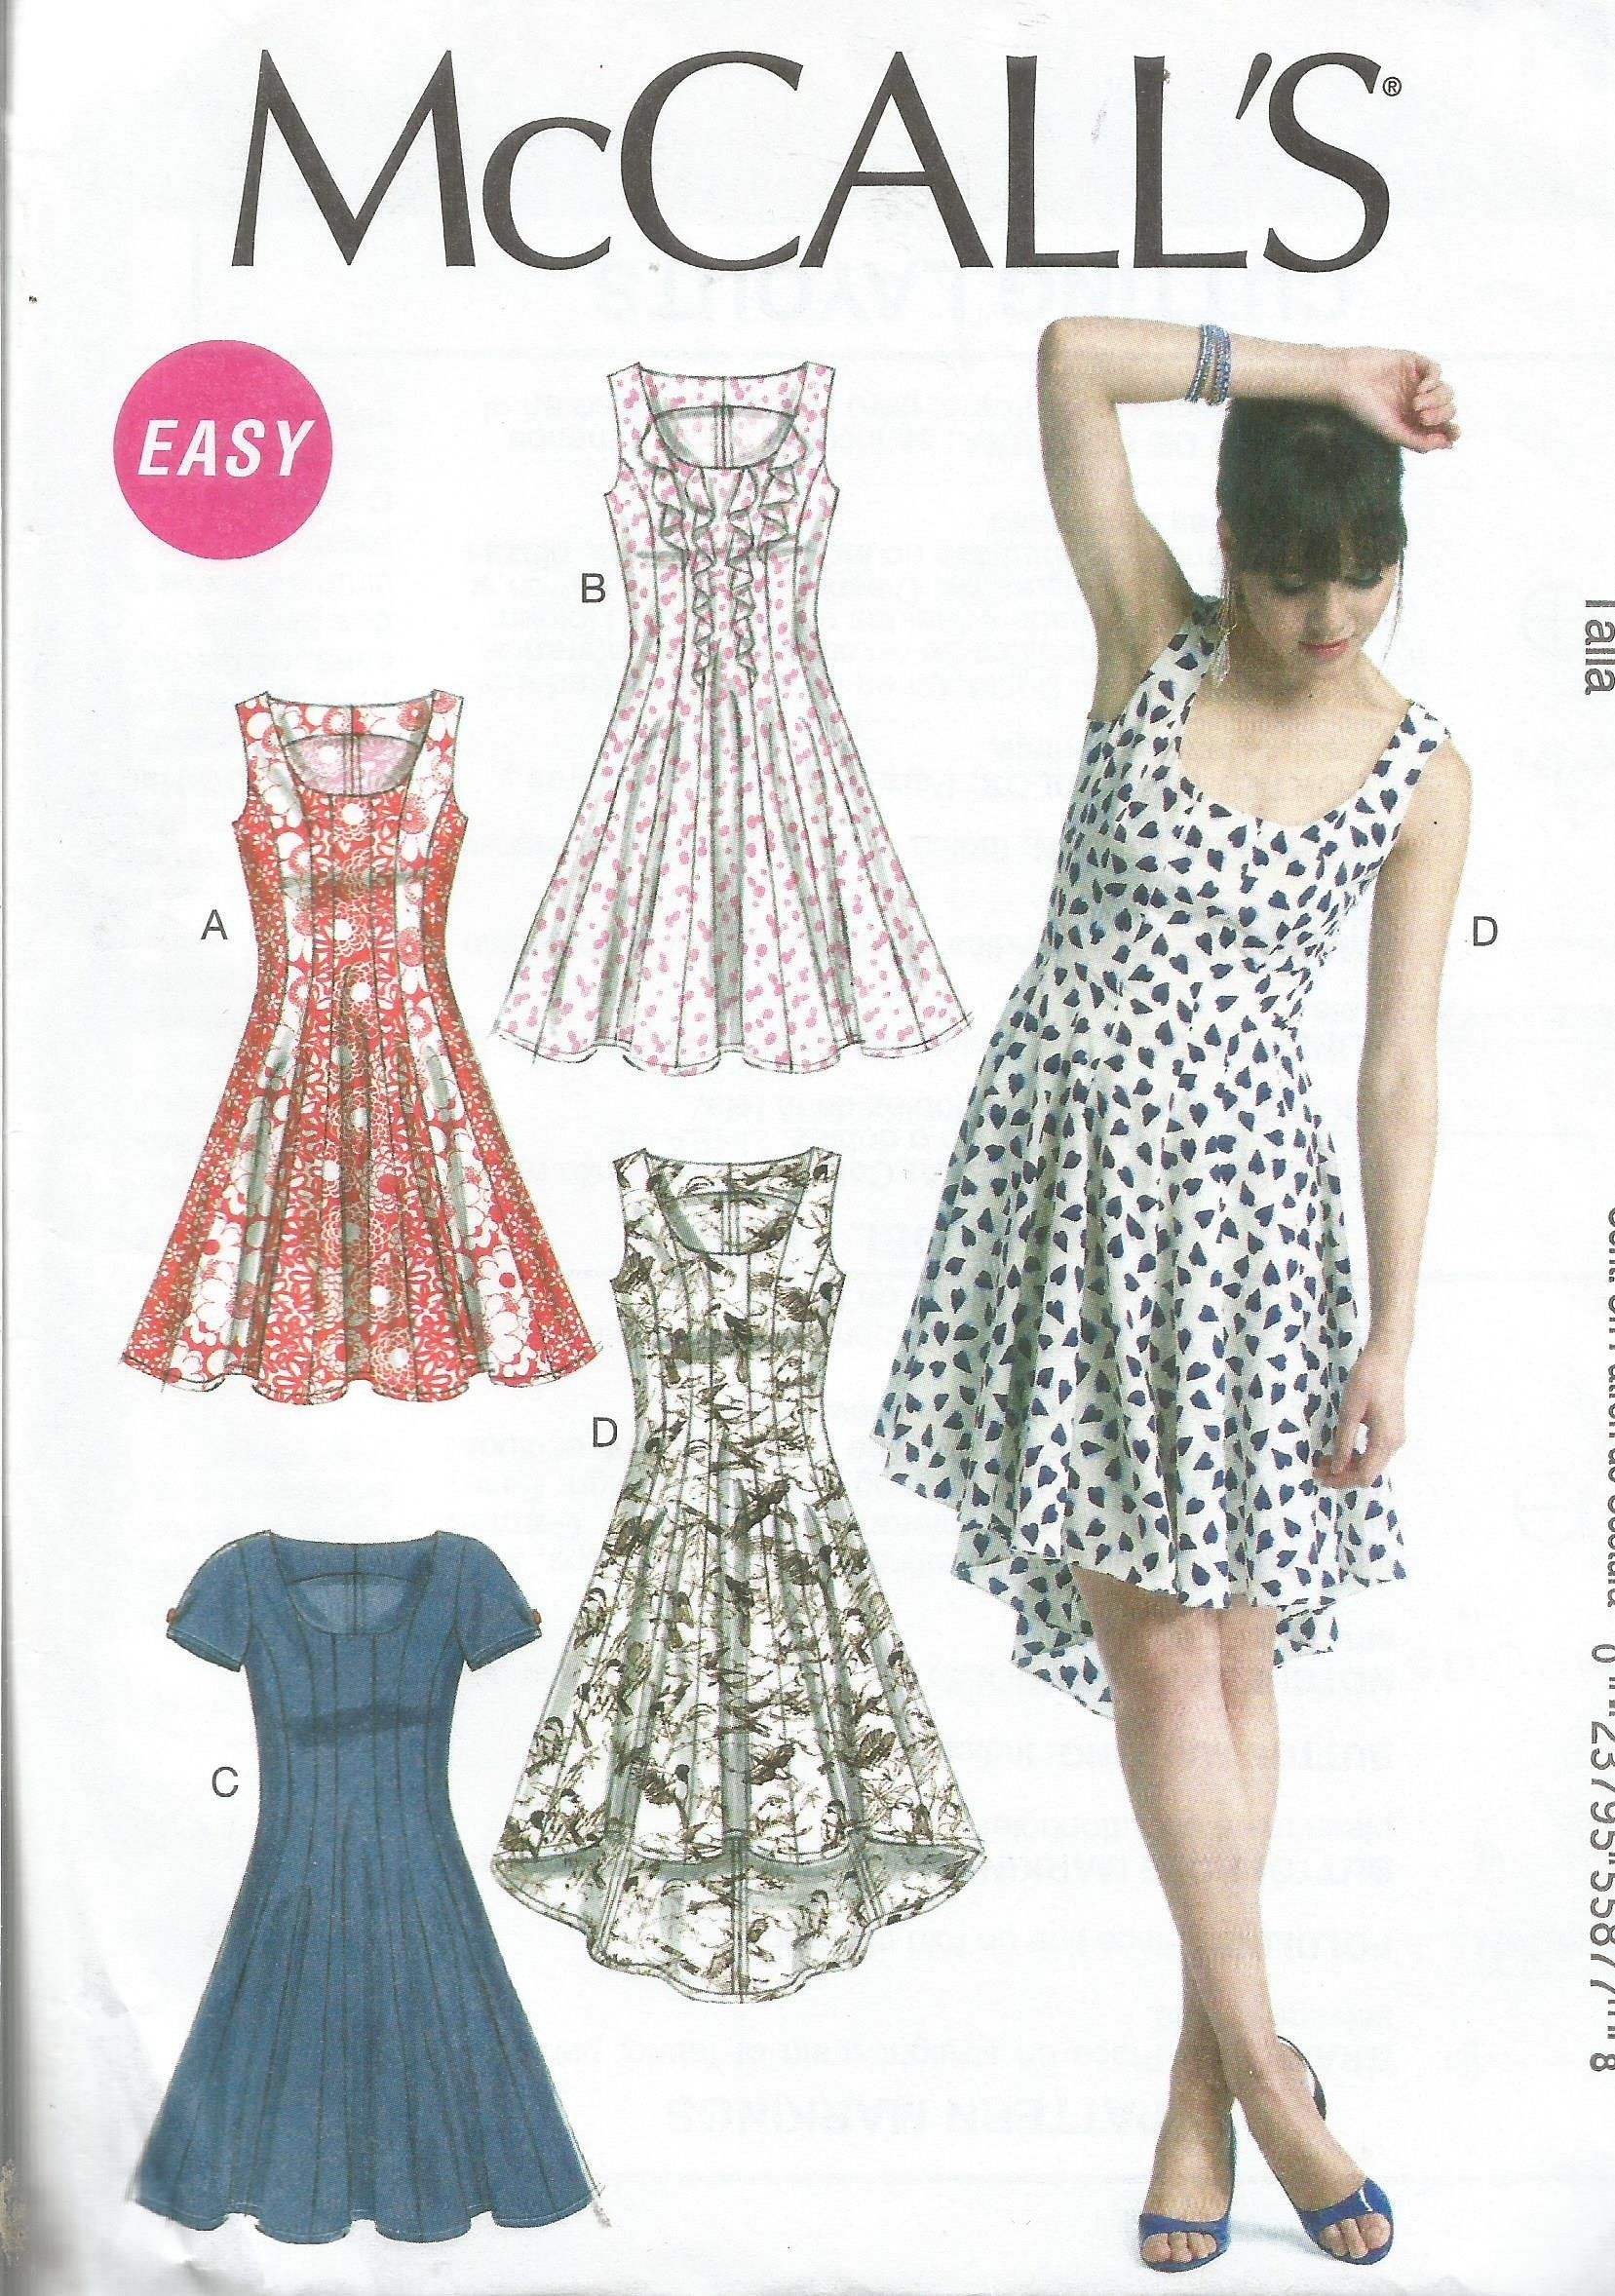 Misses Dress Patterns, McCalls 6504, Sizes 6 - 14 -   18 casual dress Patterns ideas